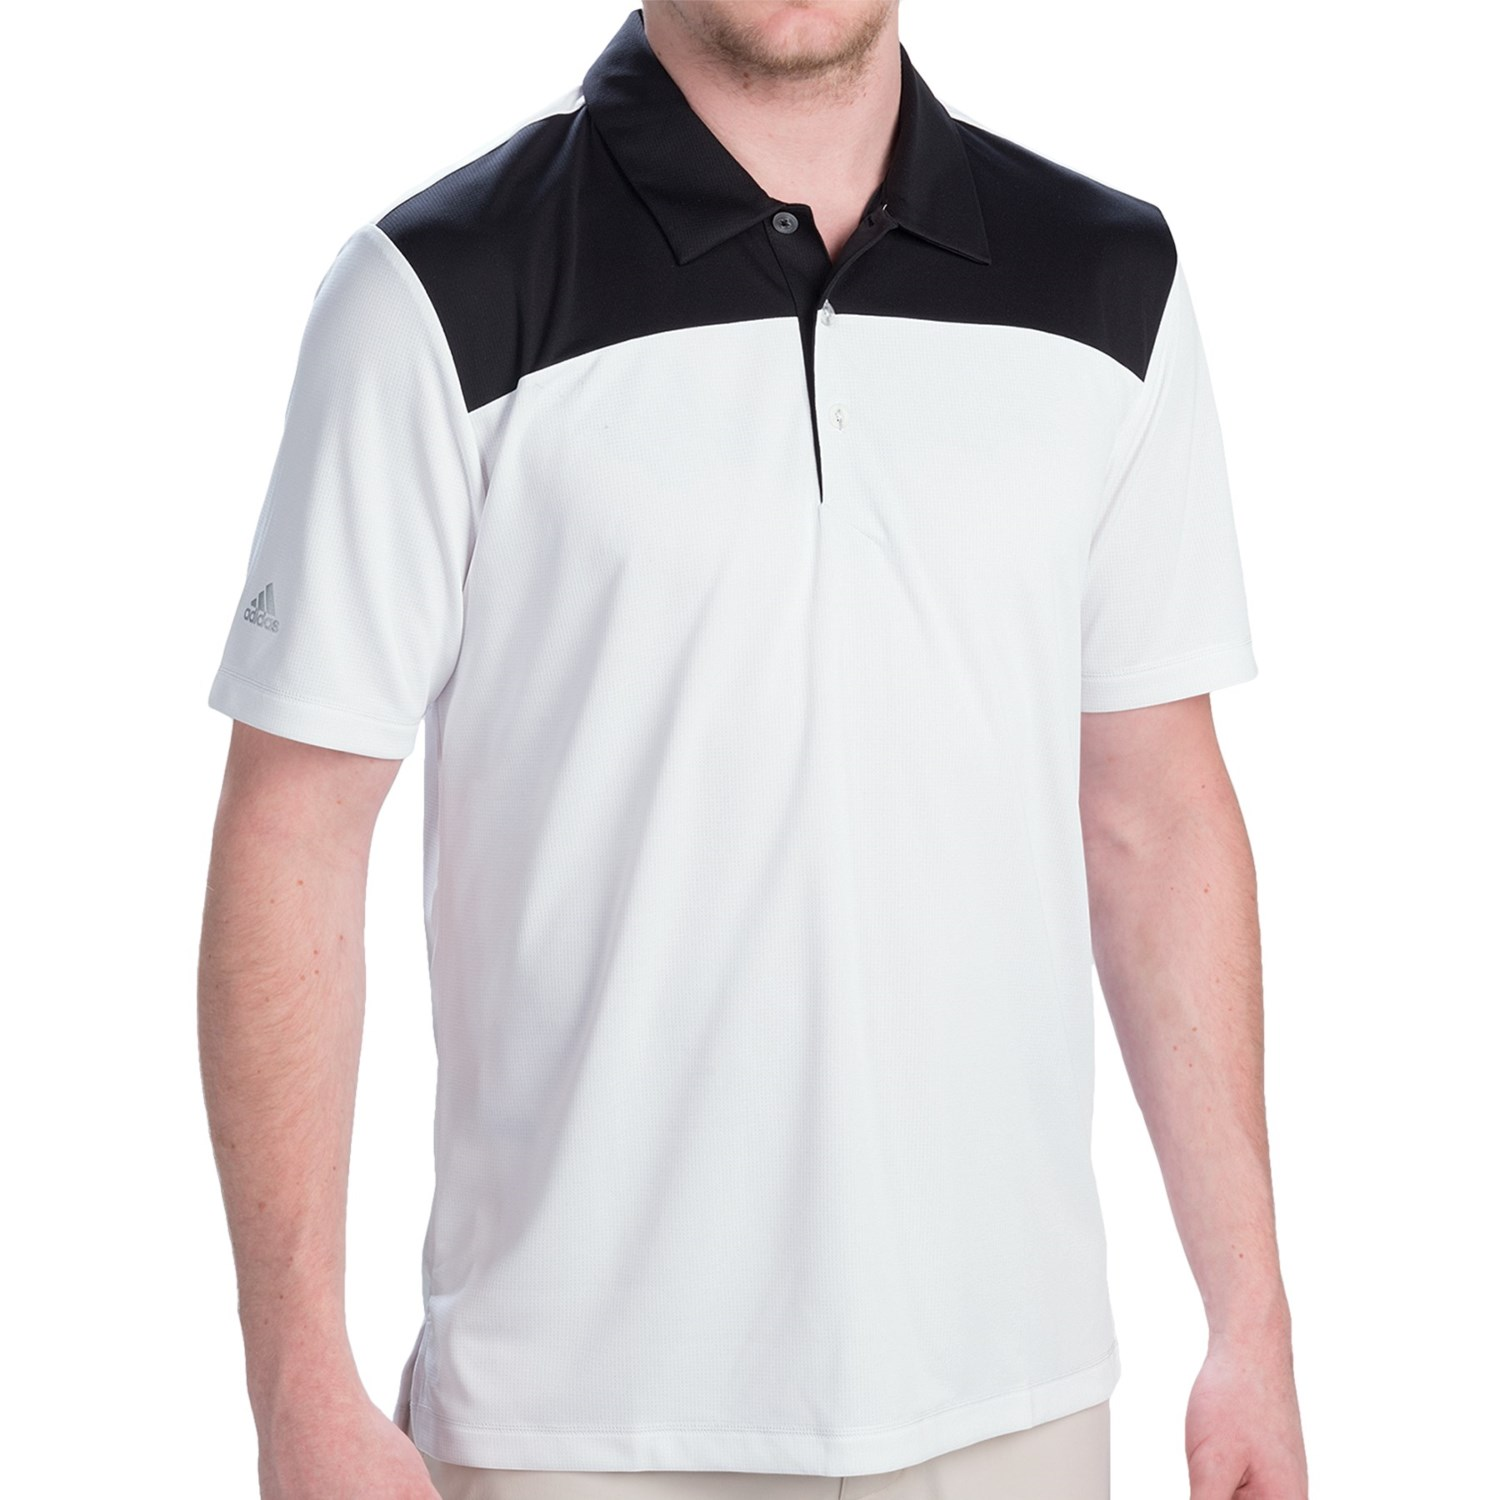 Adidas Climachill Polo Shirt For Men 9240n Save 73